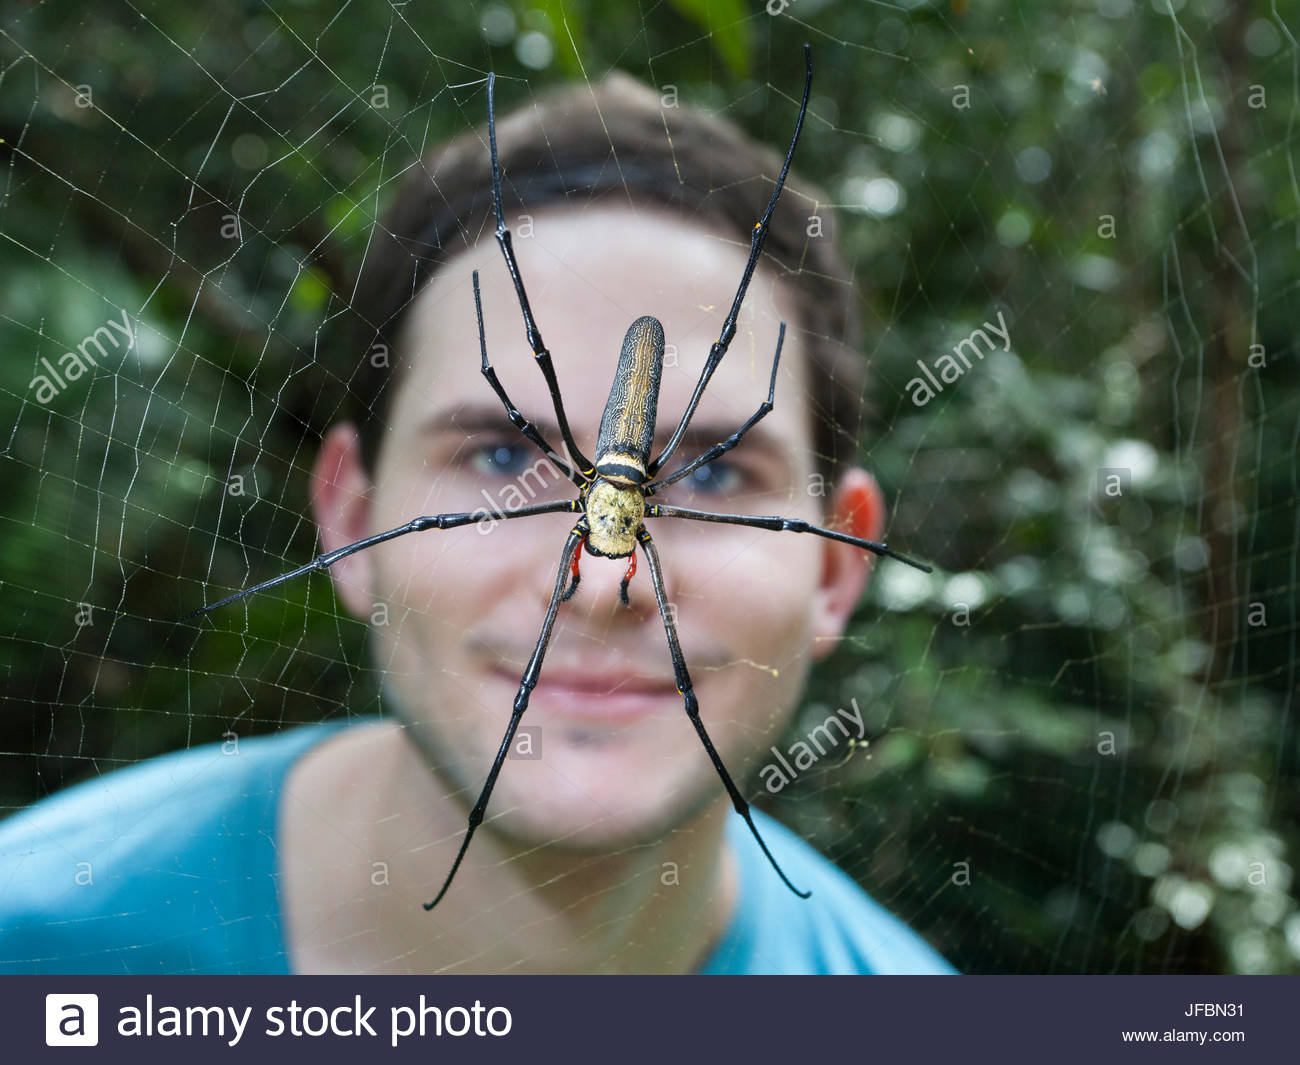 A man stands behind a golden orb spider, Nephiladae, on a web. - Stock Image